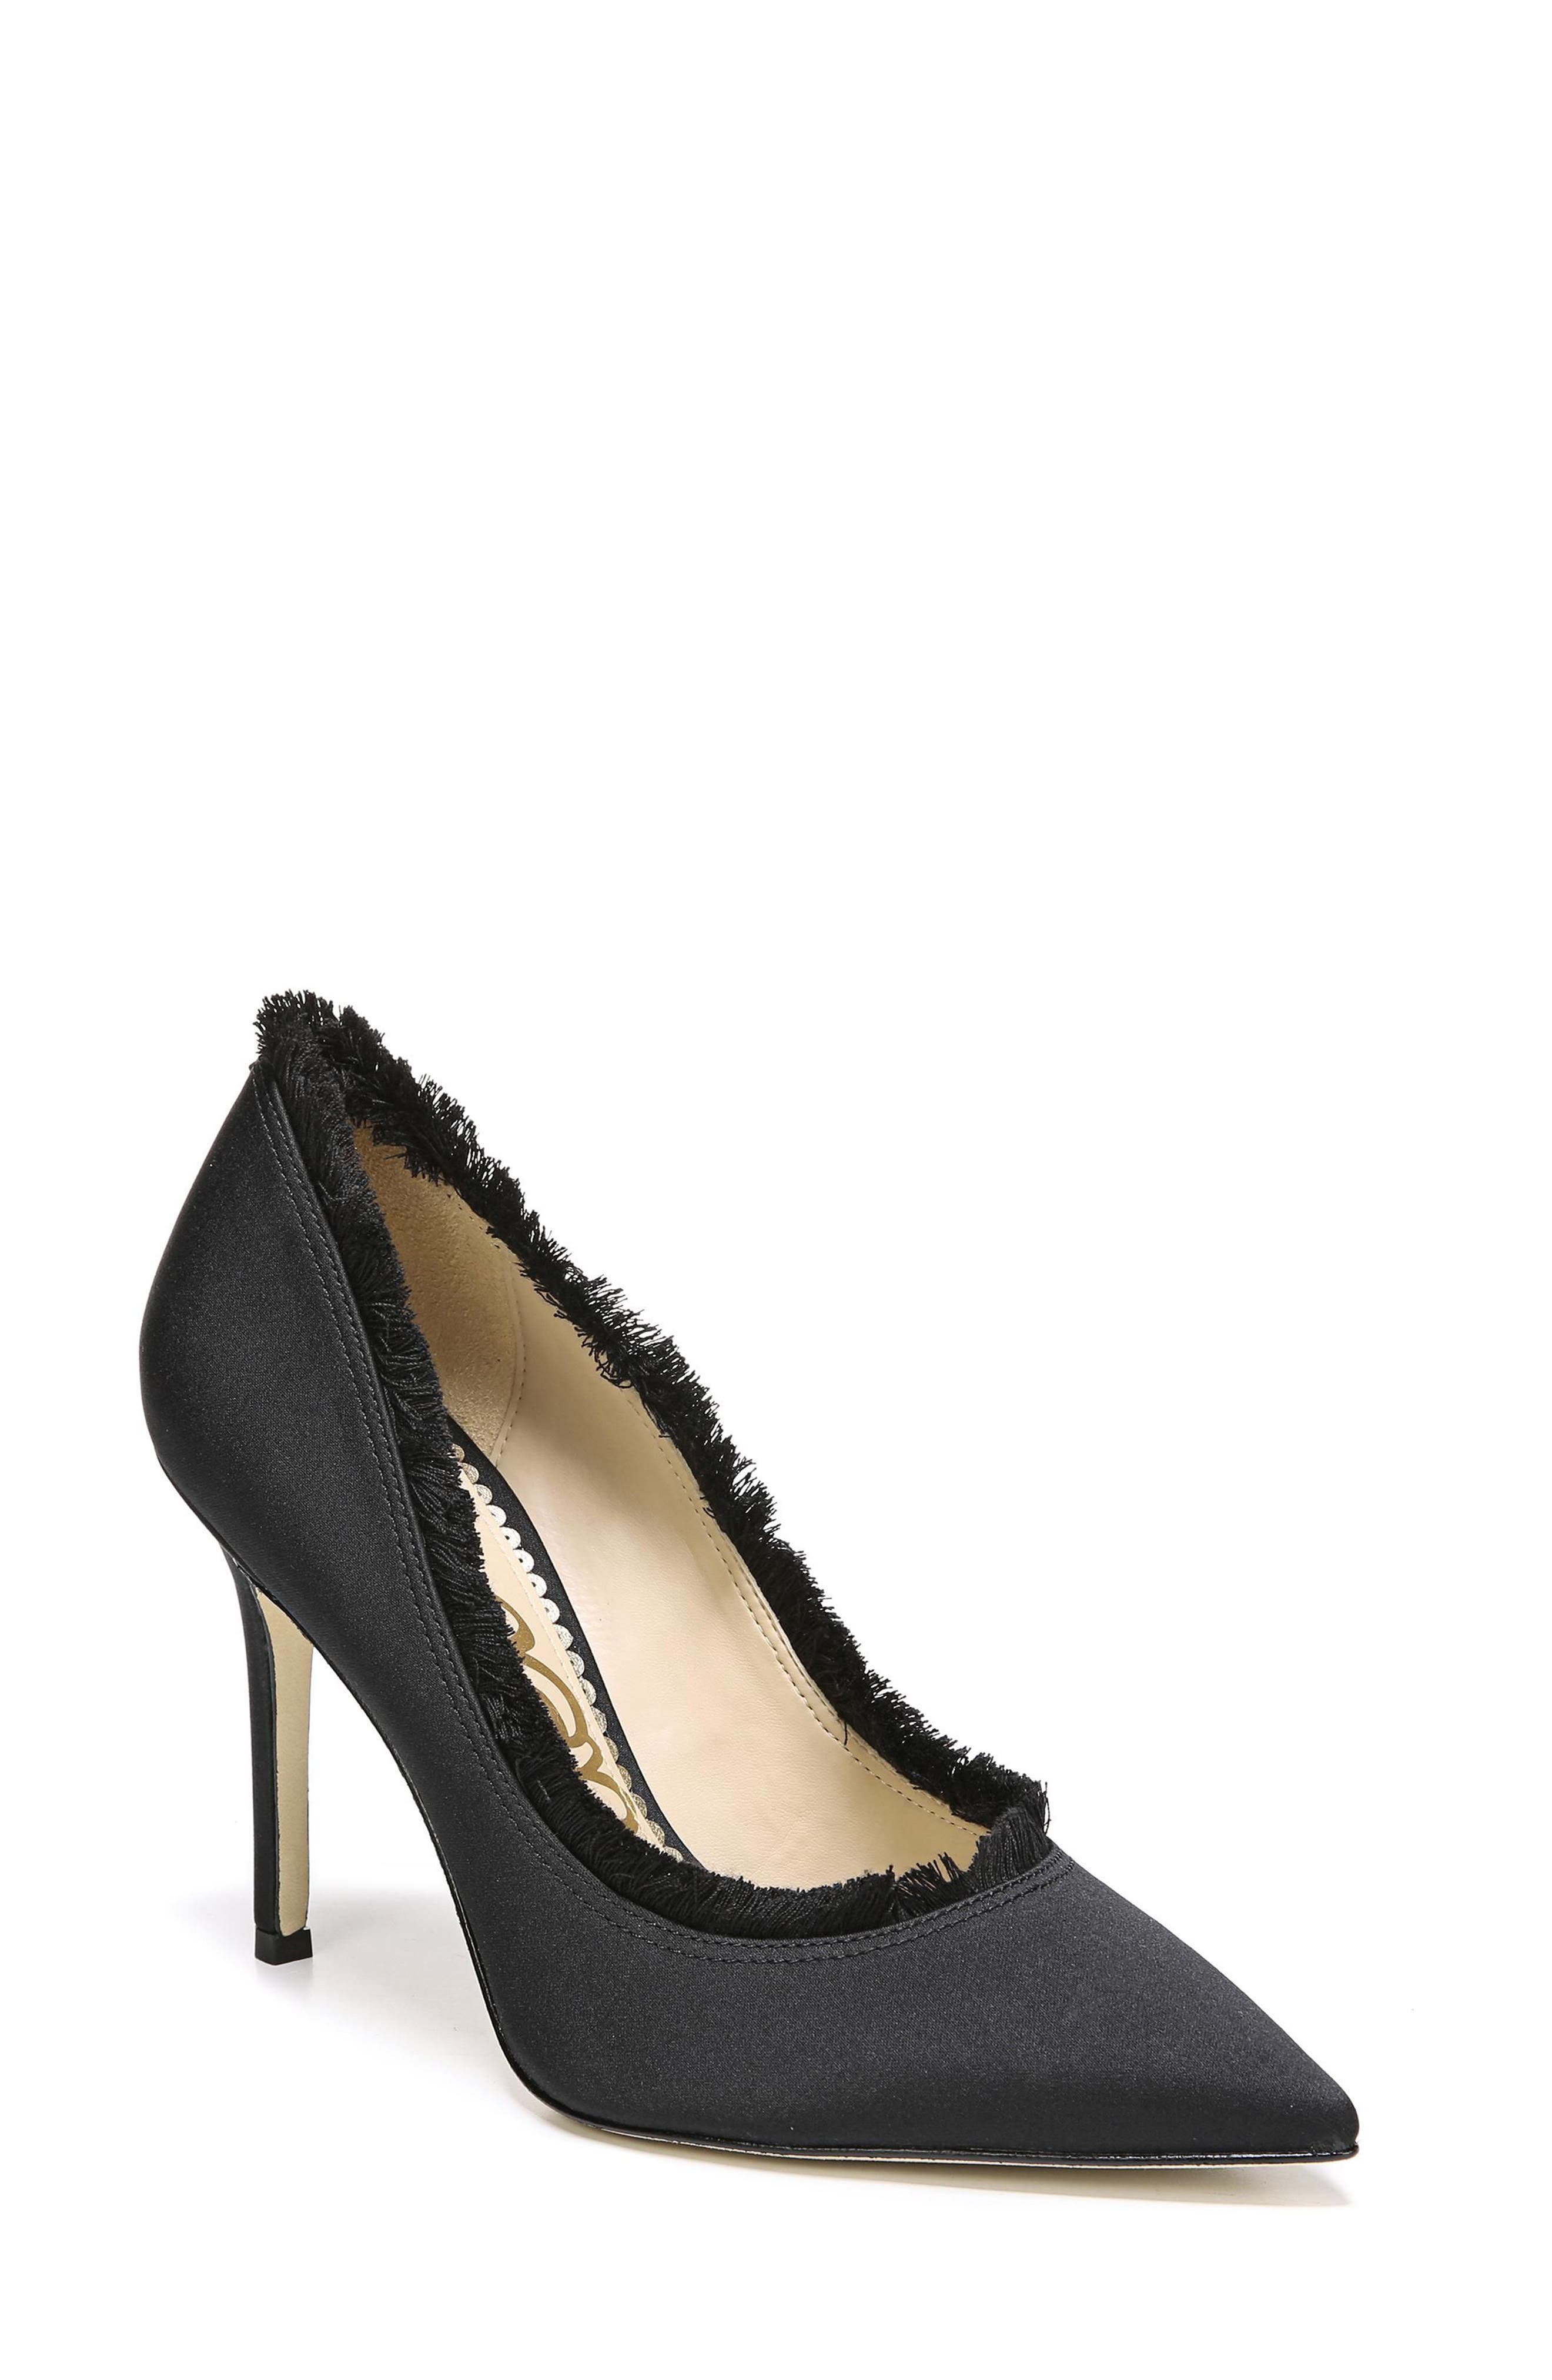 Halan Pointy Toe Pump,                             Main thumbnail 1, color,                             001